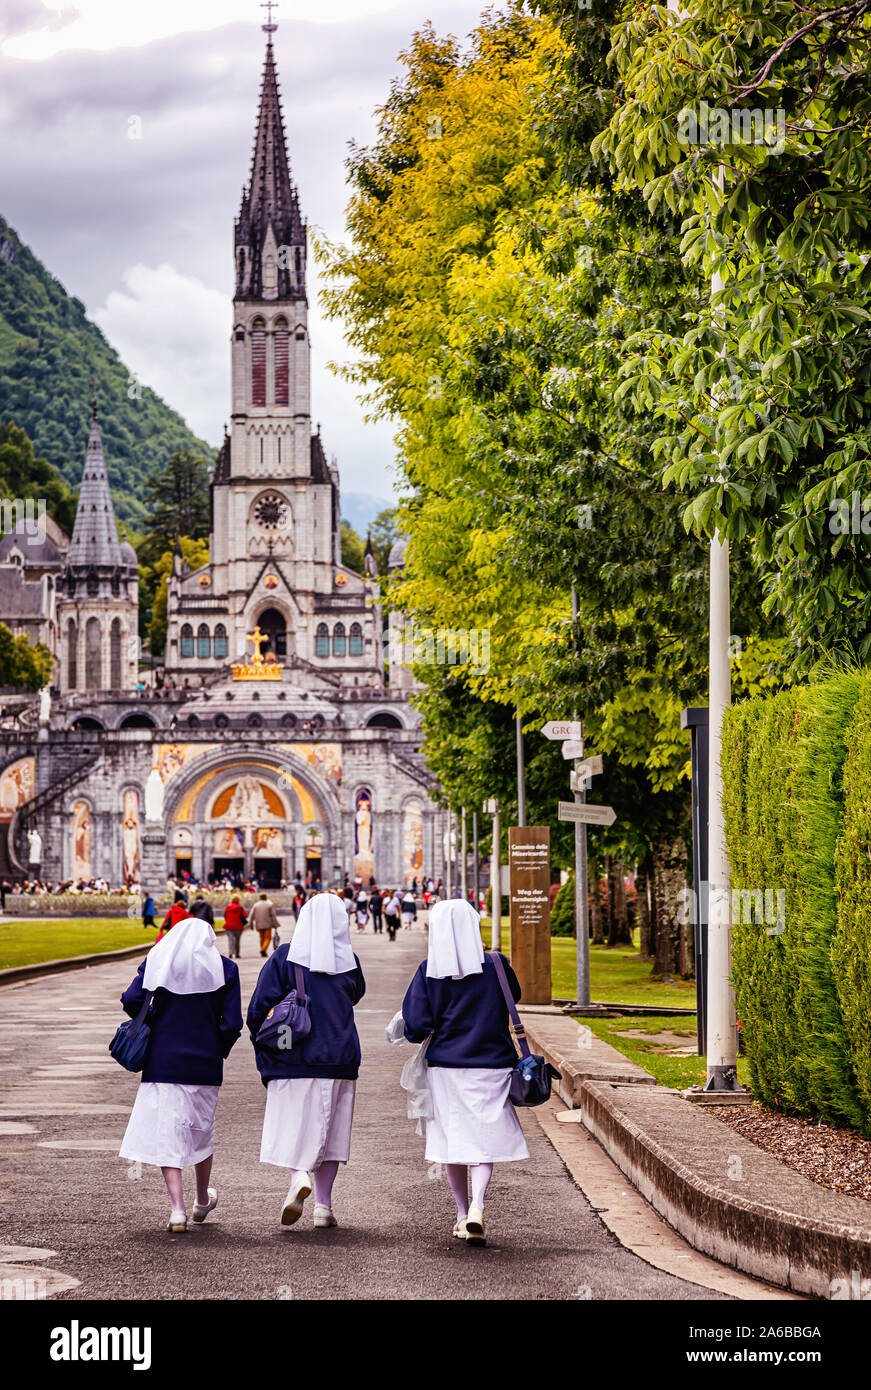 LOURDES - JUNE 15, 2019: View of nuns on the bottom of Notre-Dame du Rosaire basilica in Lourdes, France Stock Photo